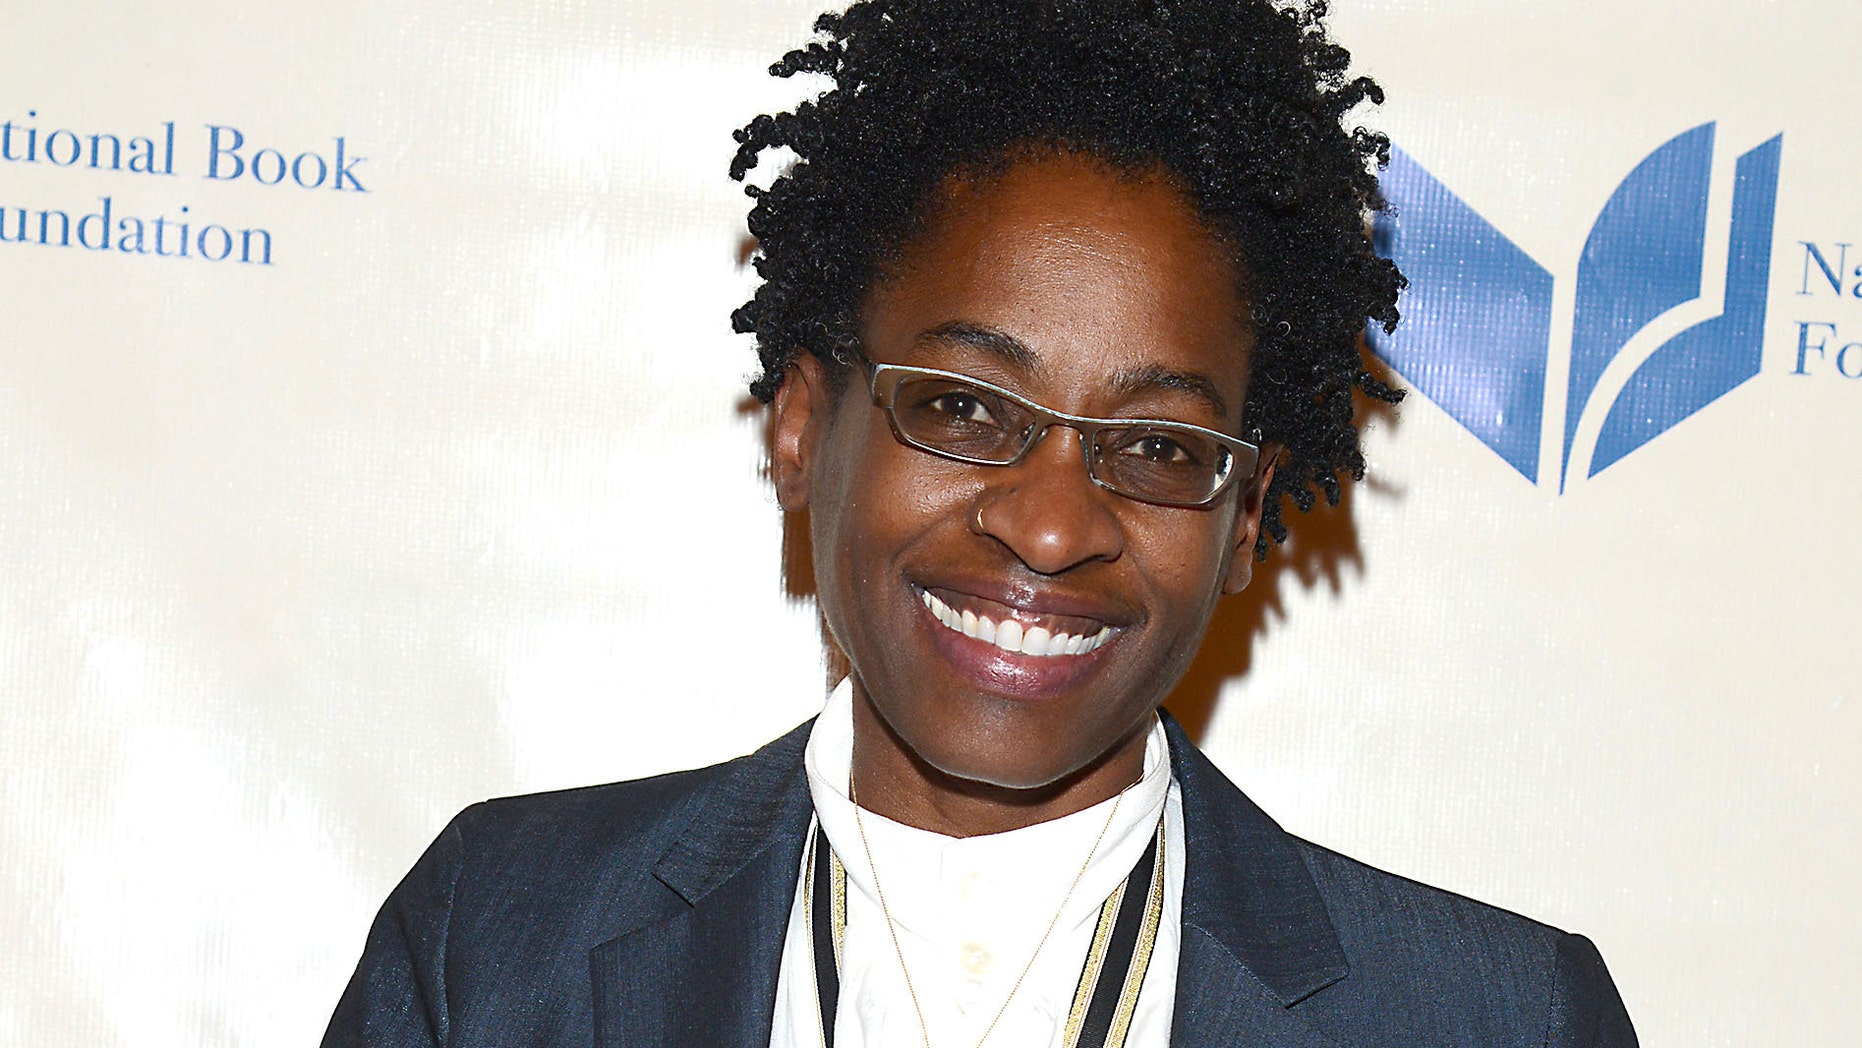 Nov. 19, 2014. Jacqueline Woodson, winner of the National Book Award for Young People's Literature, attending the 65th Annual National Book Awards at Cipriani Wall Street in New York.